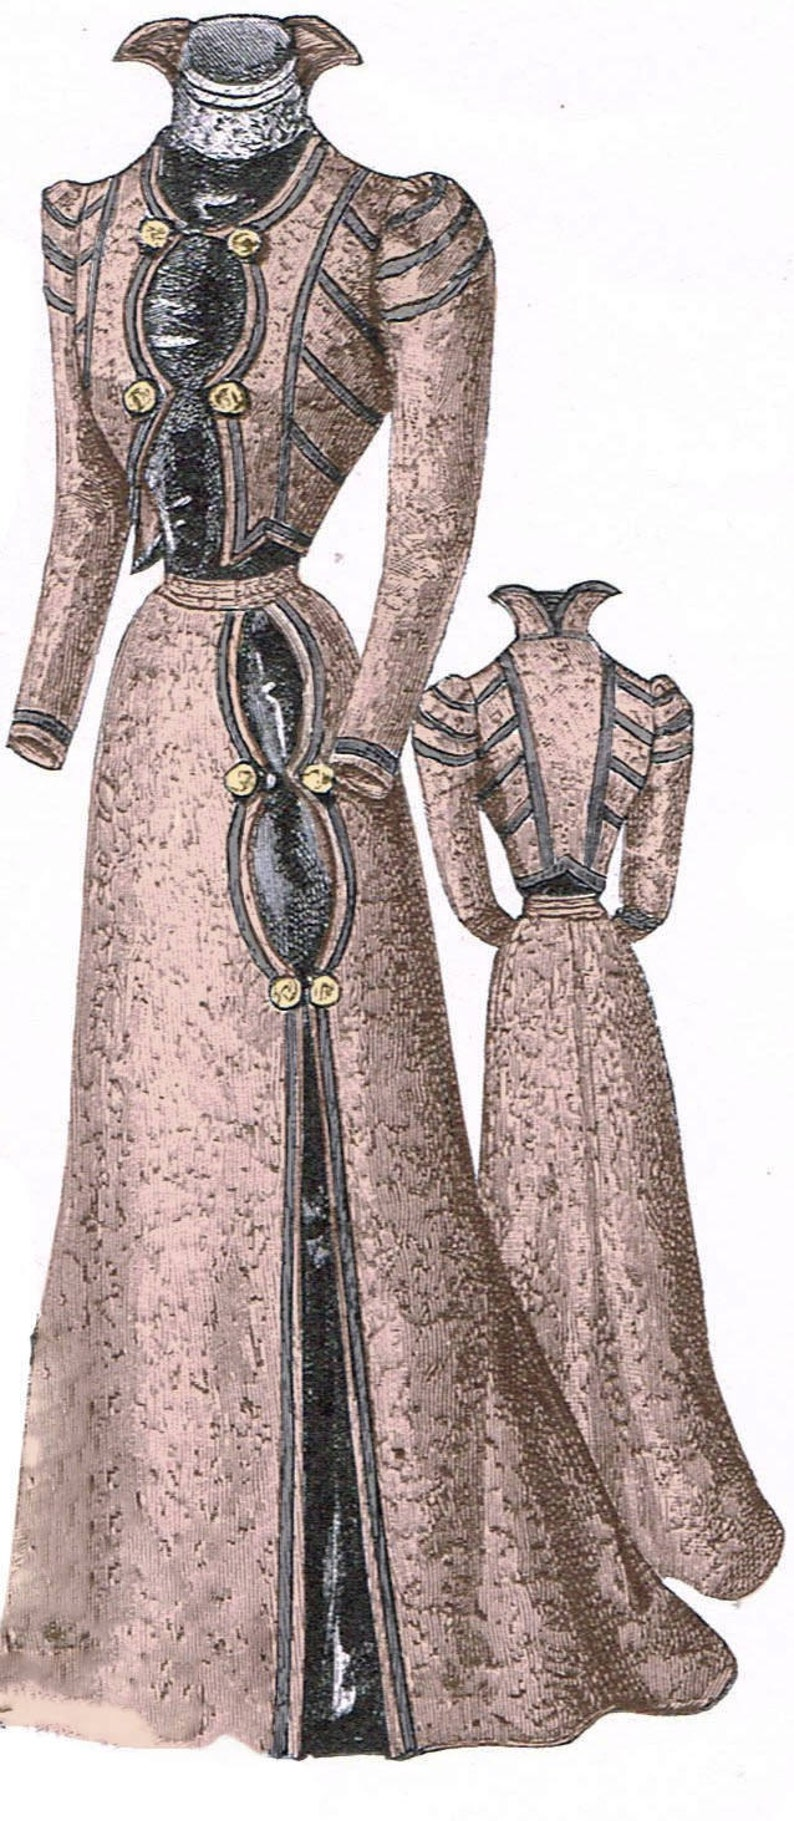 Edwardian Sewing Patterns- Dresses, Skirts, Blouses, Costumes 1899 Victorian Walking Suit Pattern - sized for you from antique originals - with bonus lingerie pattern and library - #308 $9.95 AT vintagedancer.com